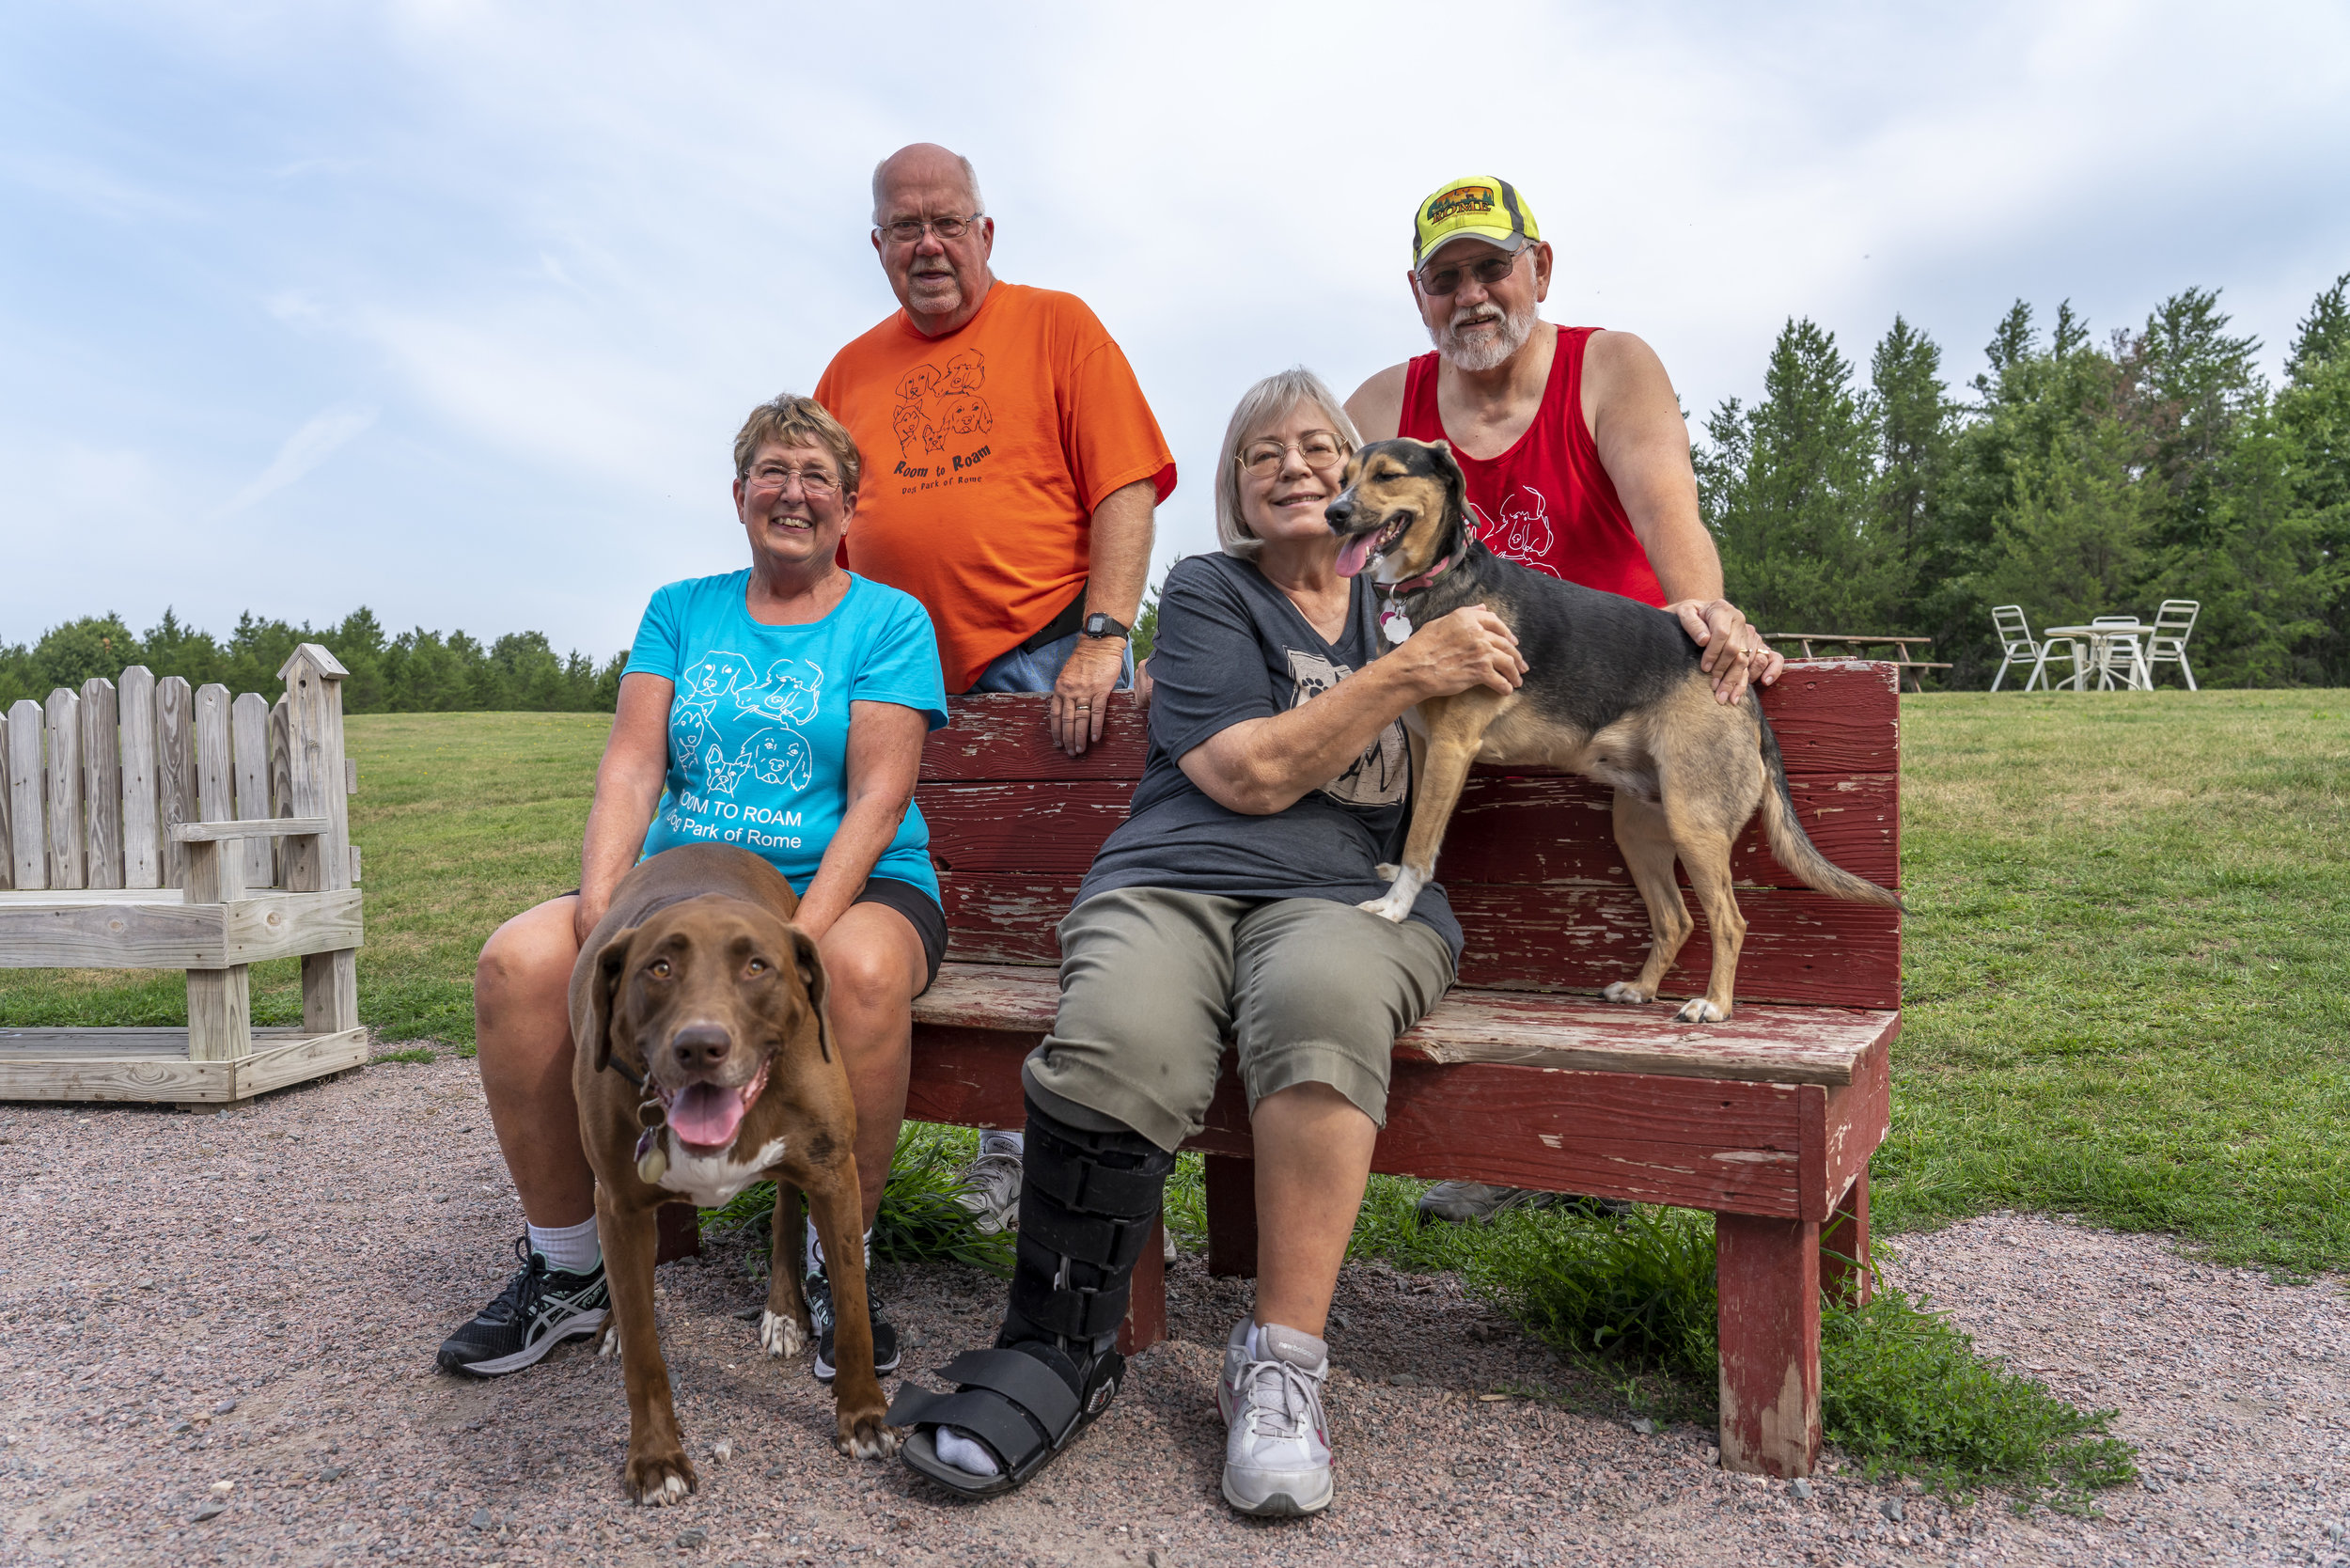 Founding Couple Kathy & Larry Halverson with fur baby Maizy on the left / Dog Park Volunteers Marge & Don Smith with fur baby Ellie on the right [ all images captured by Jeffrey Bertch of Links & Landscape Photography ]